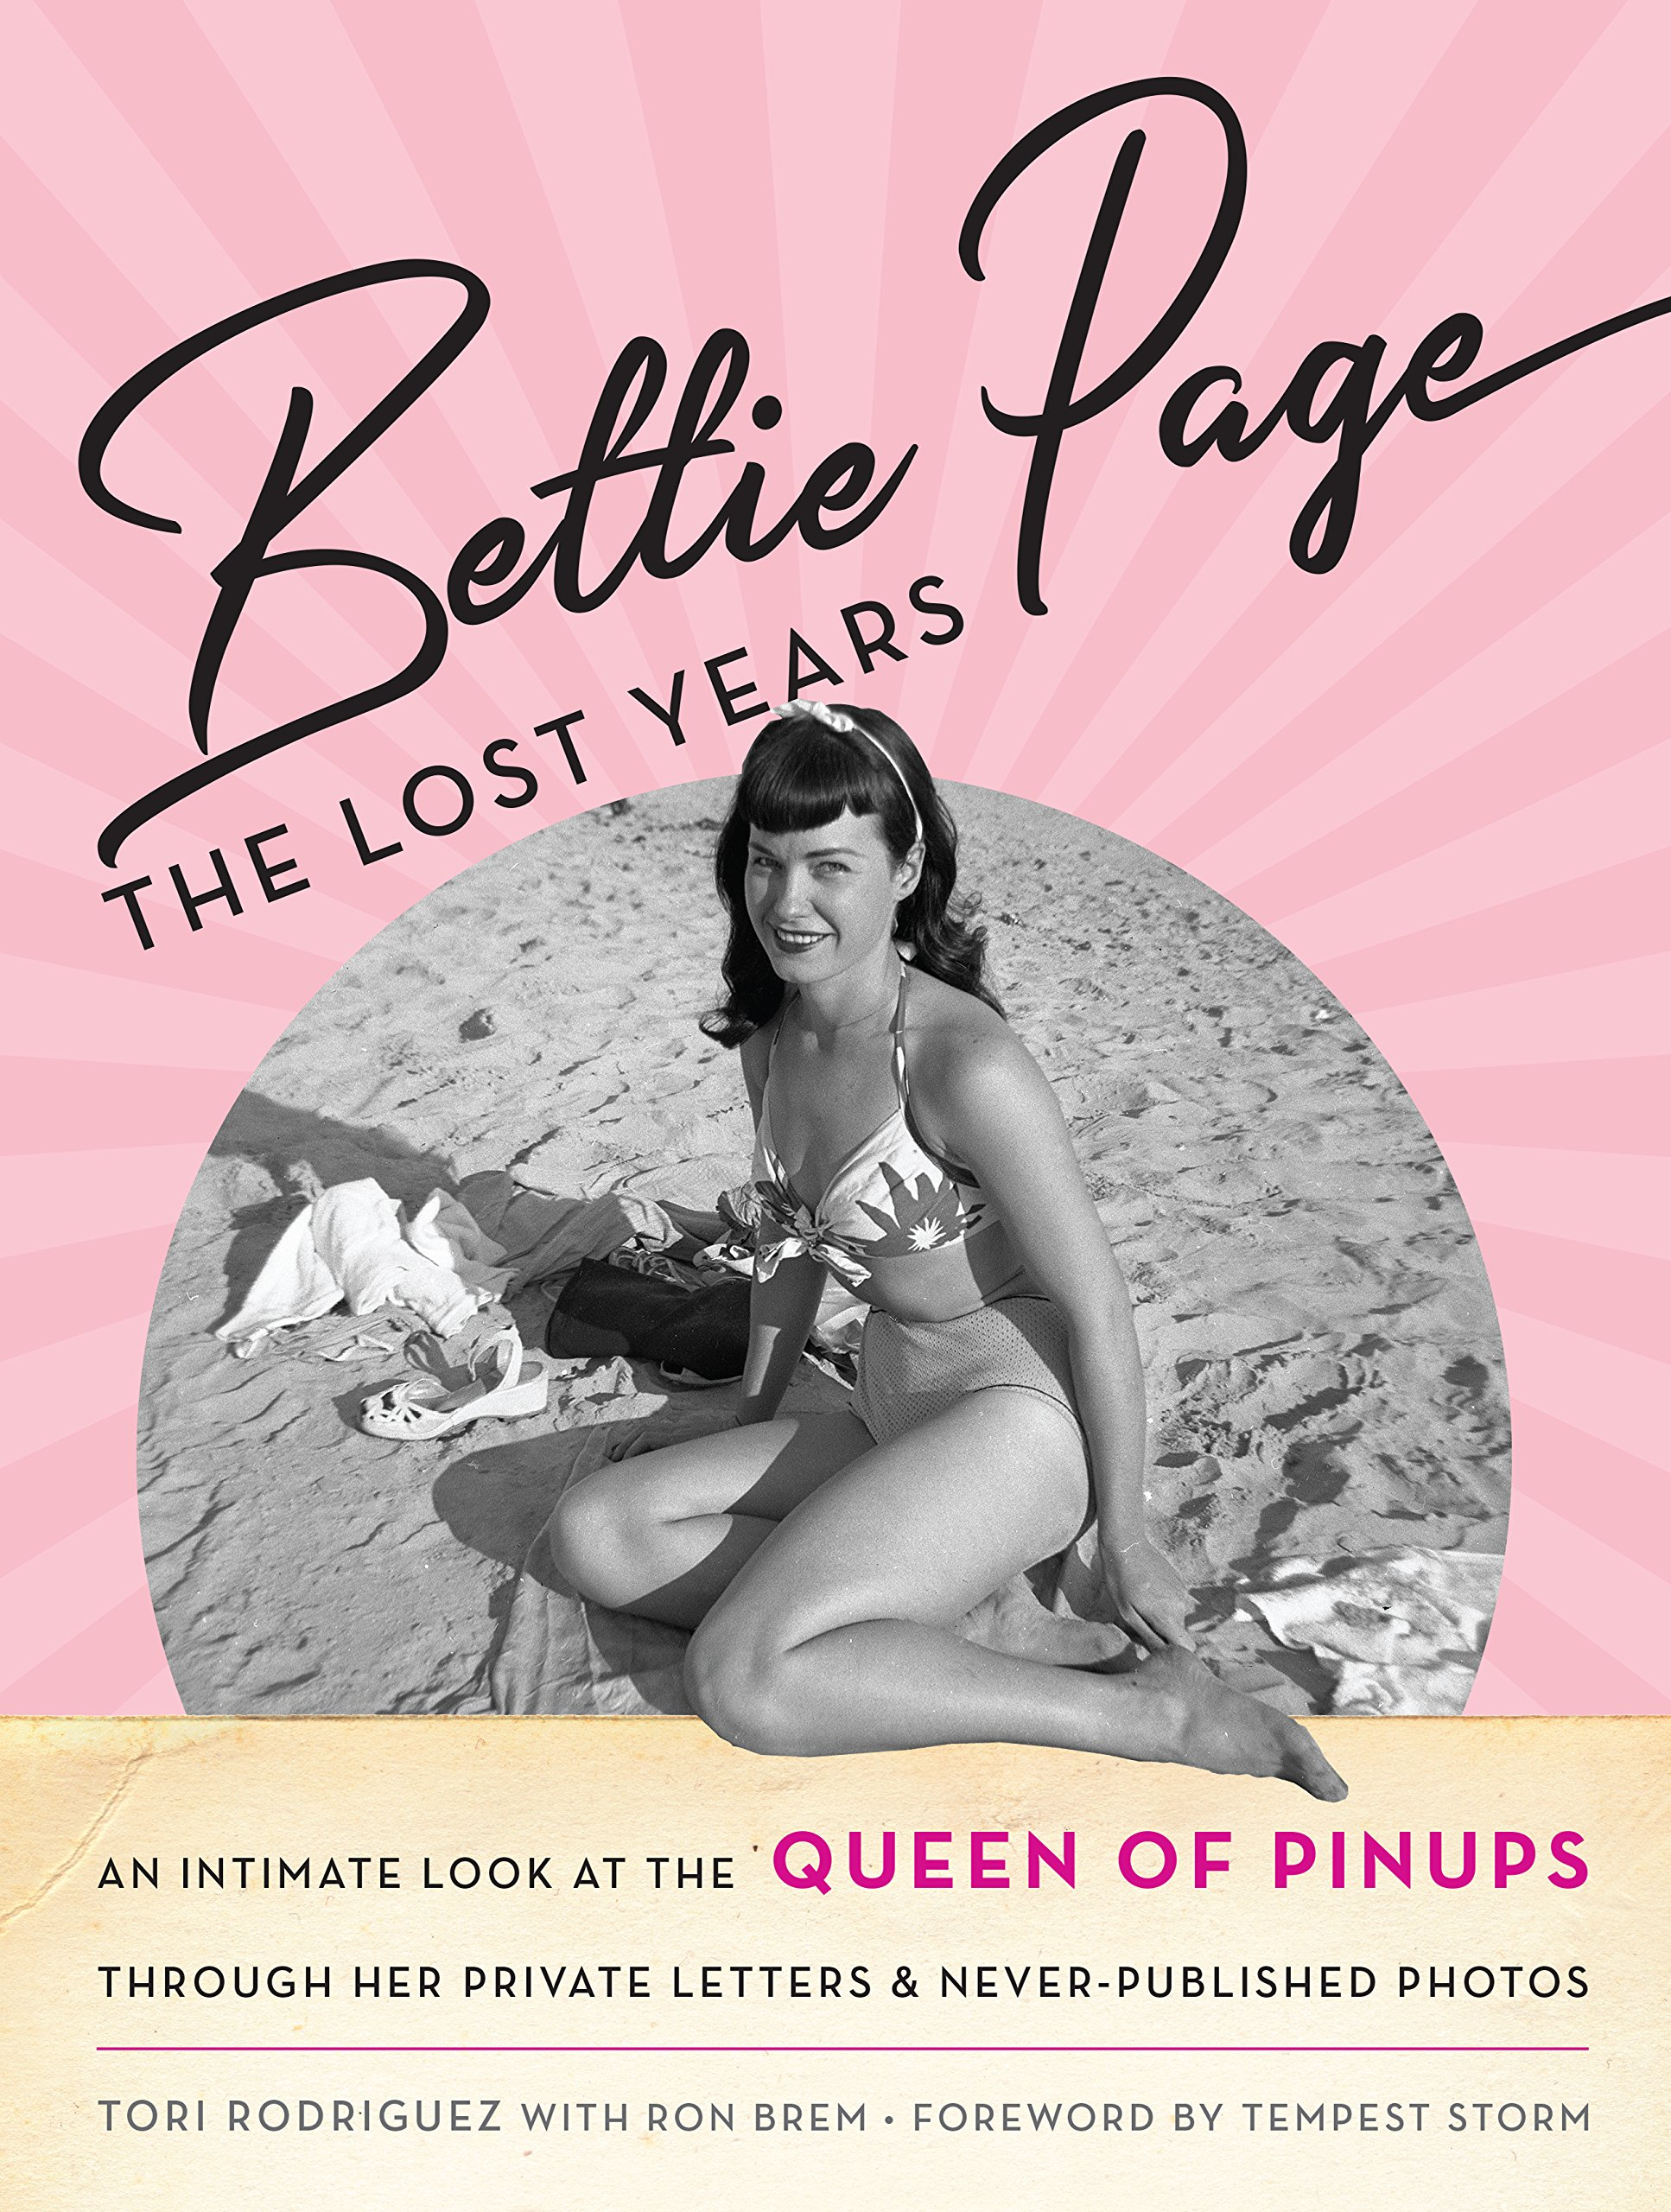 Bettie Page the Lost Years (2018)